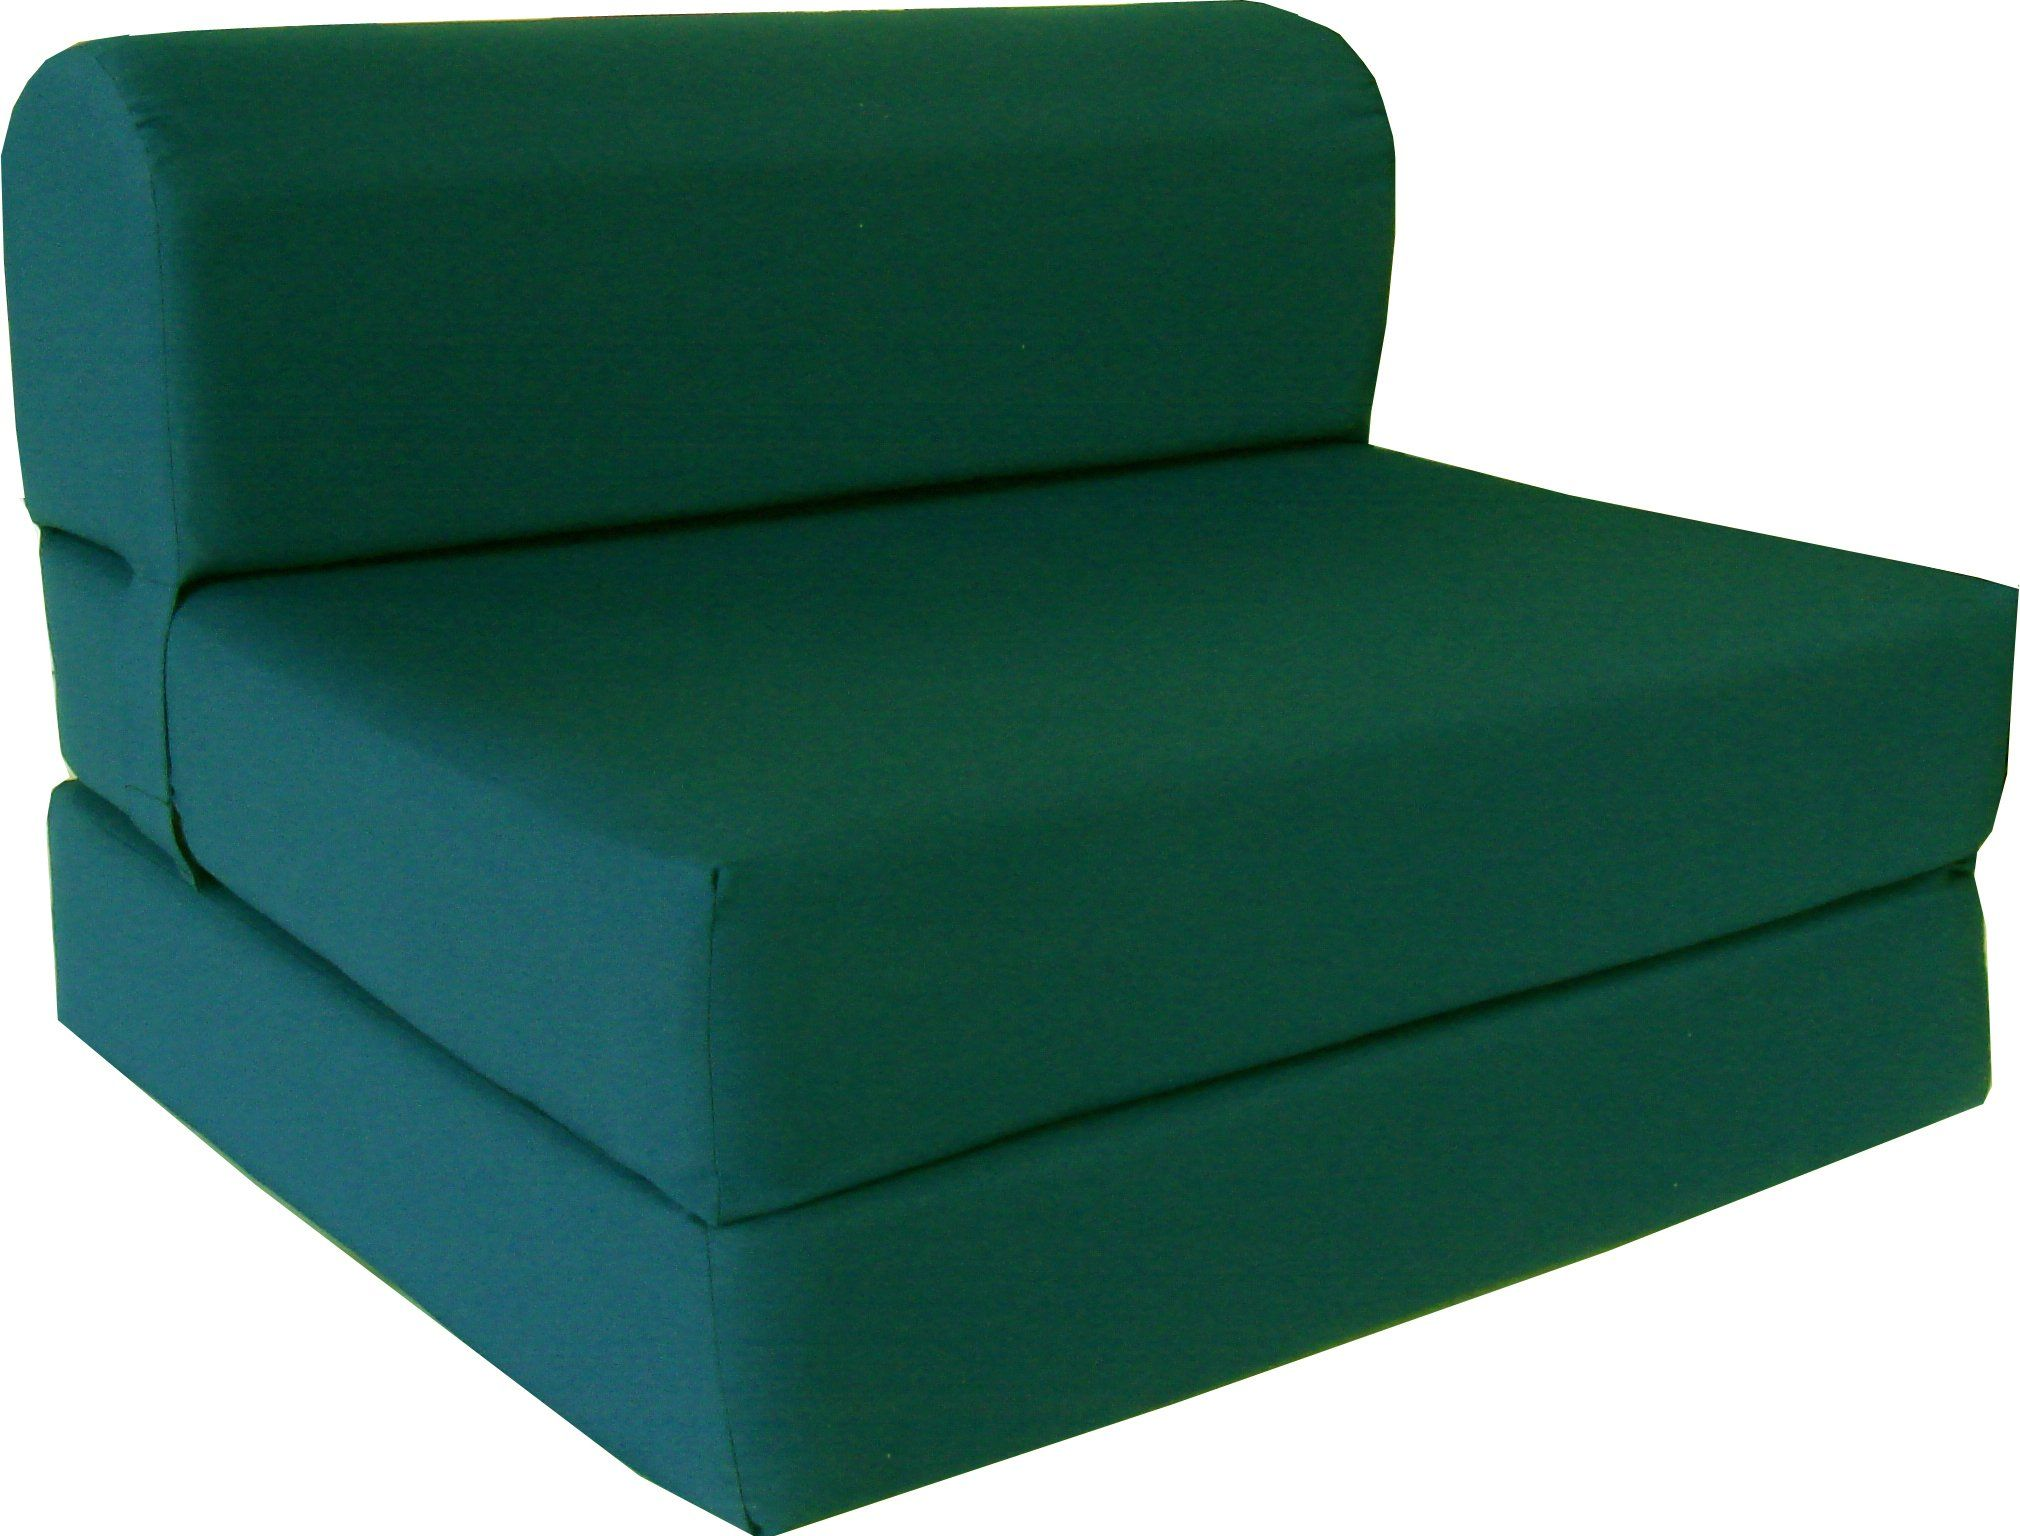 6 Thick X 36 Wide X 70 Long Twin Size Hunter Green Sleeper